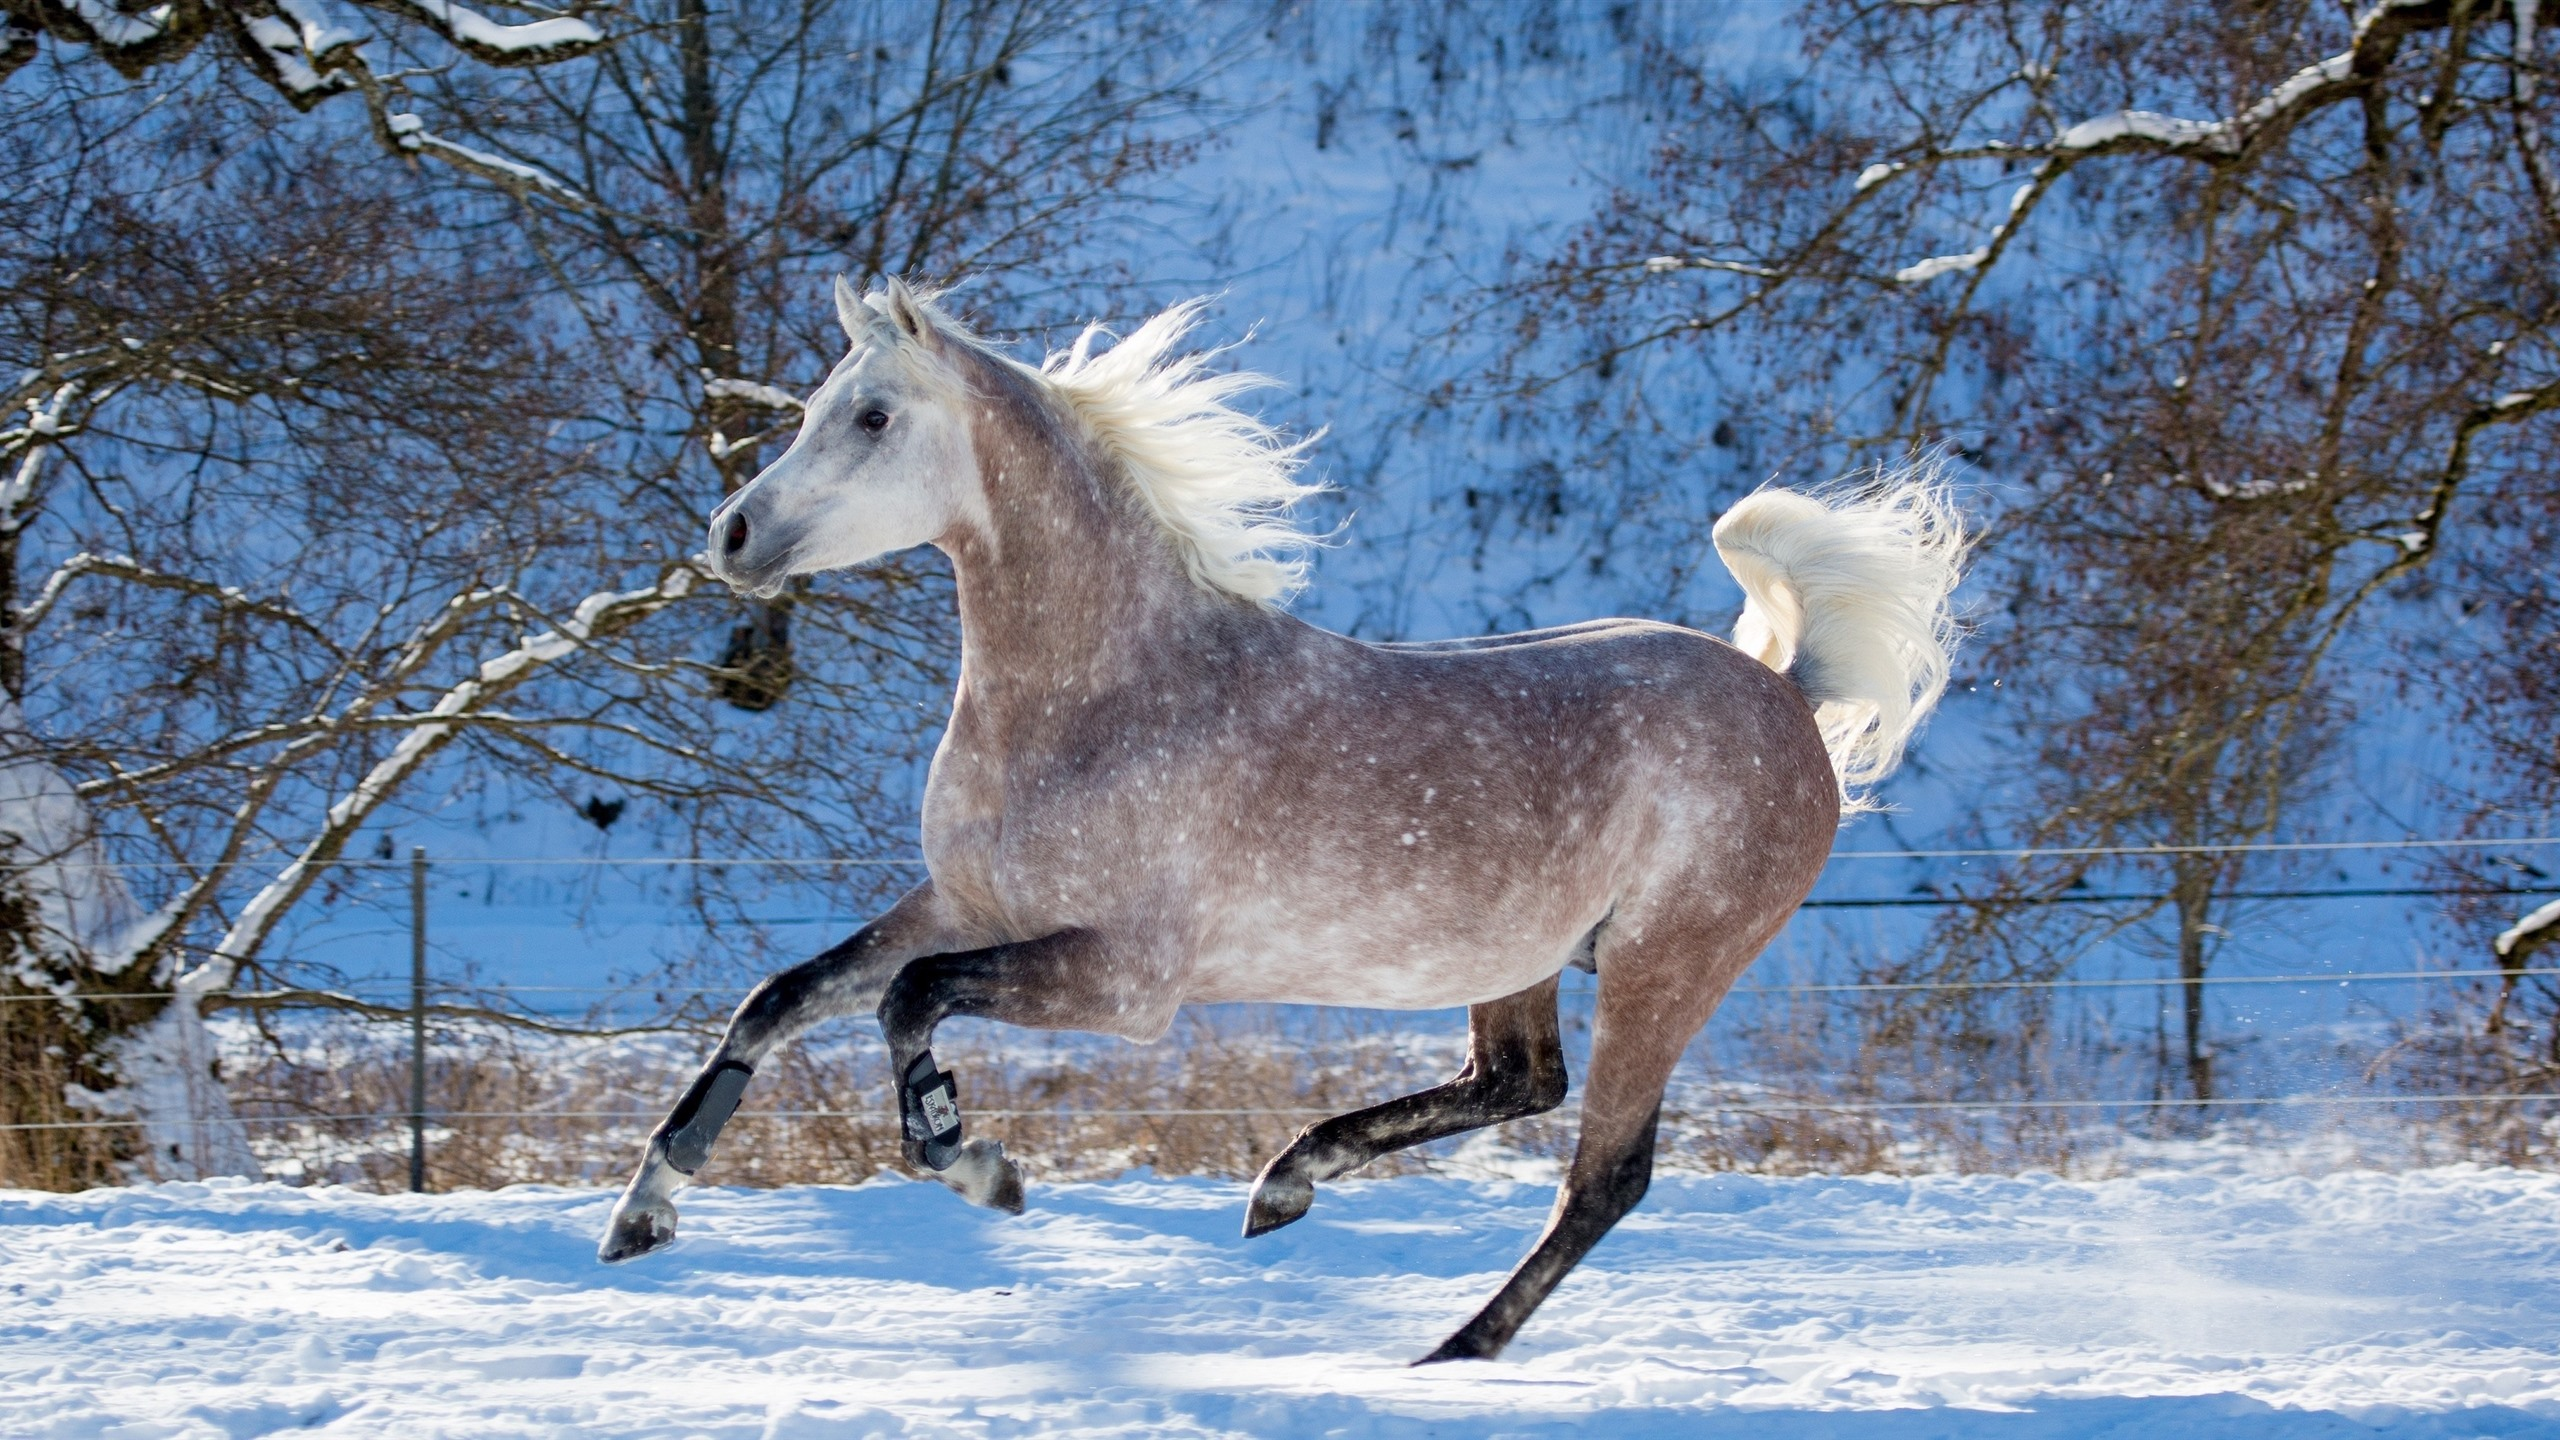 Wallpaper Horse Running Winter Snow Trees 3840x1200 Multi